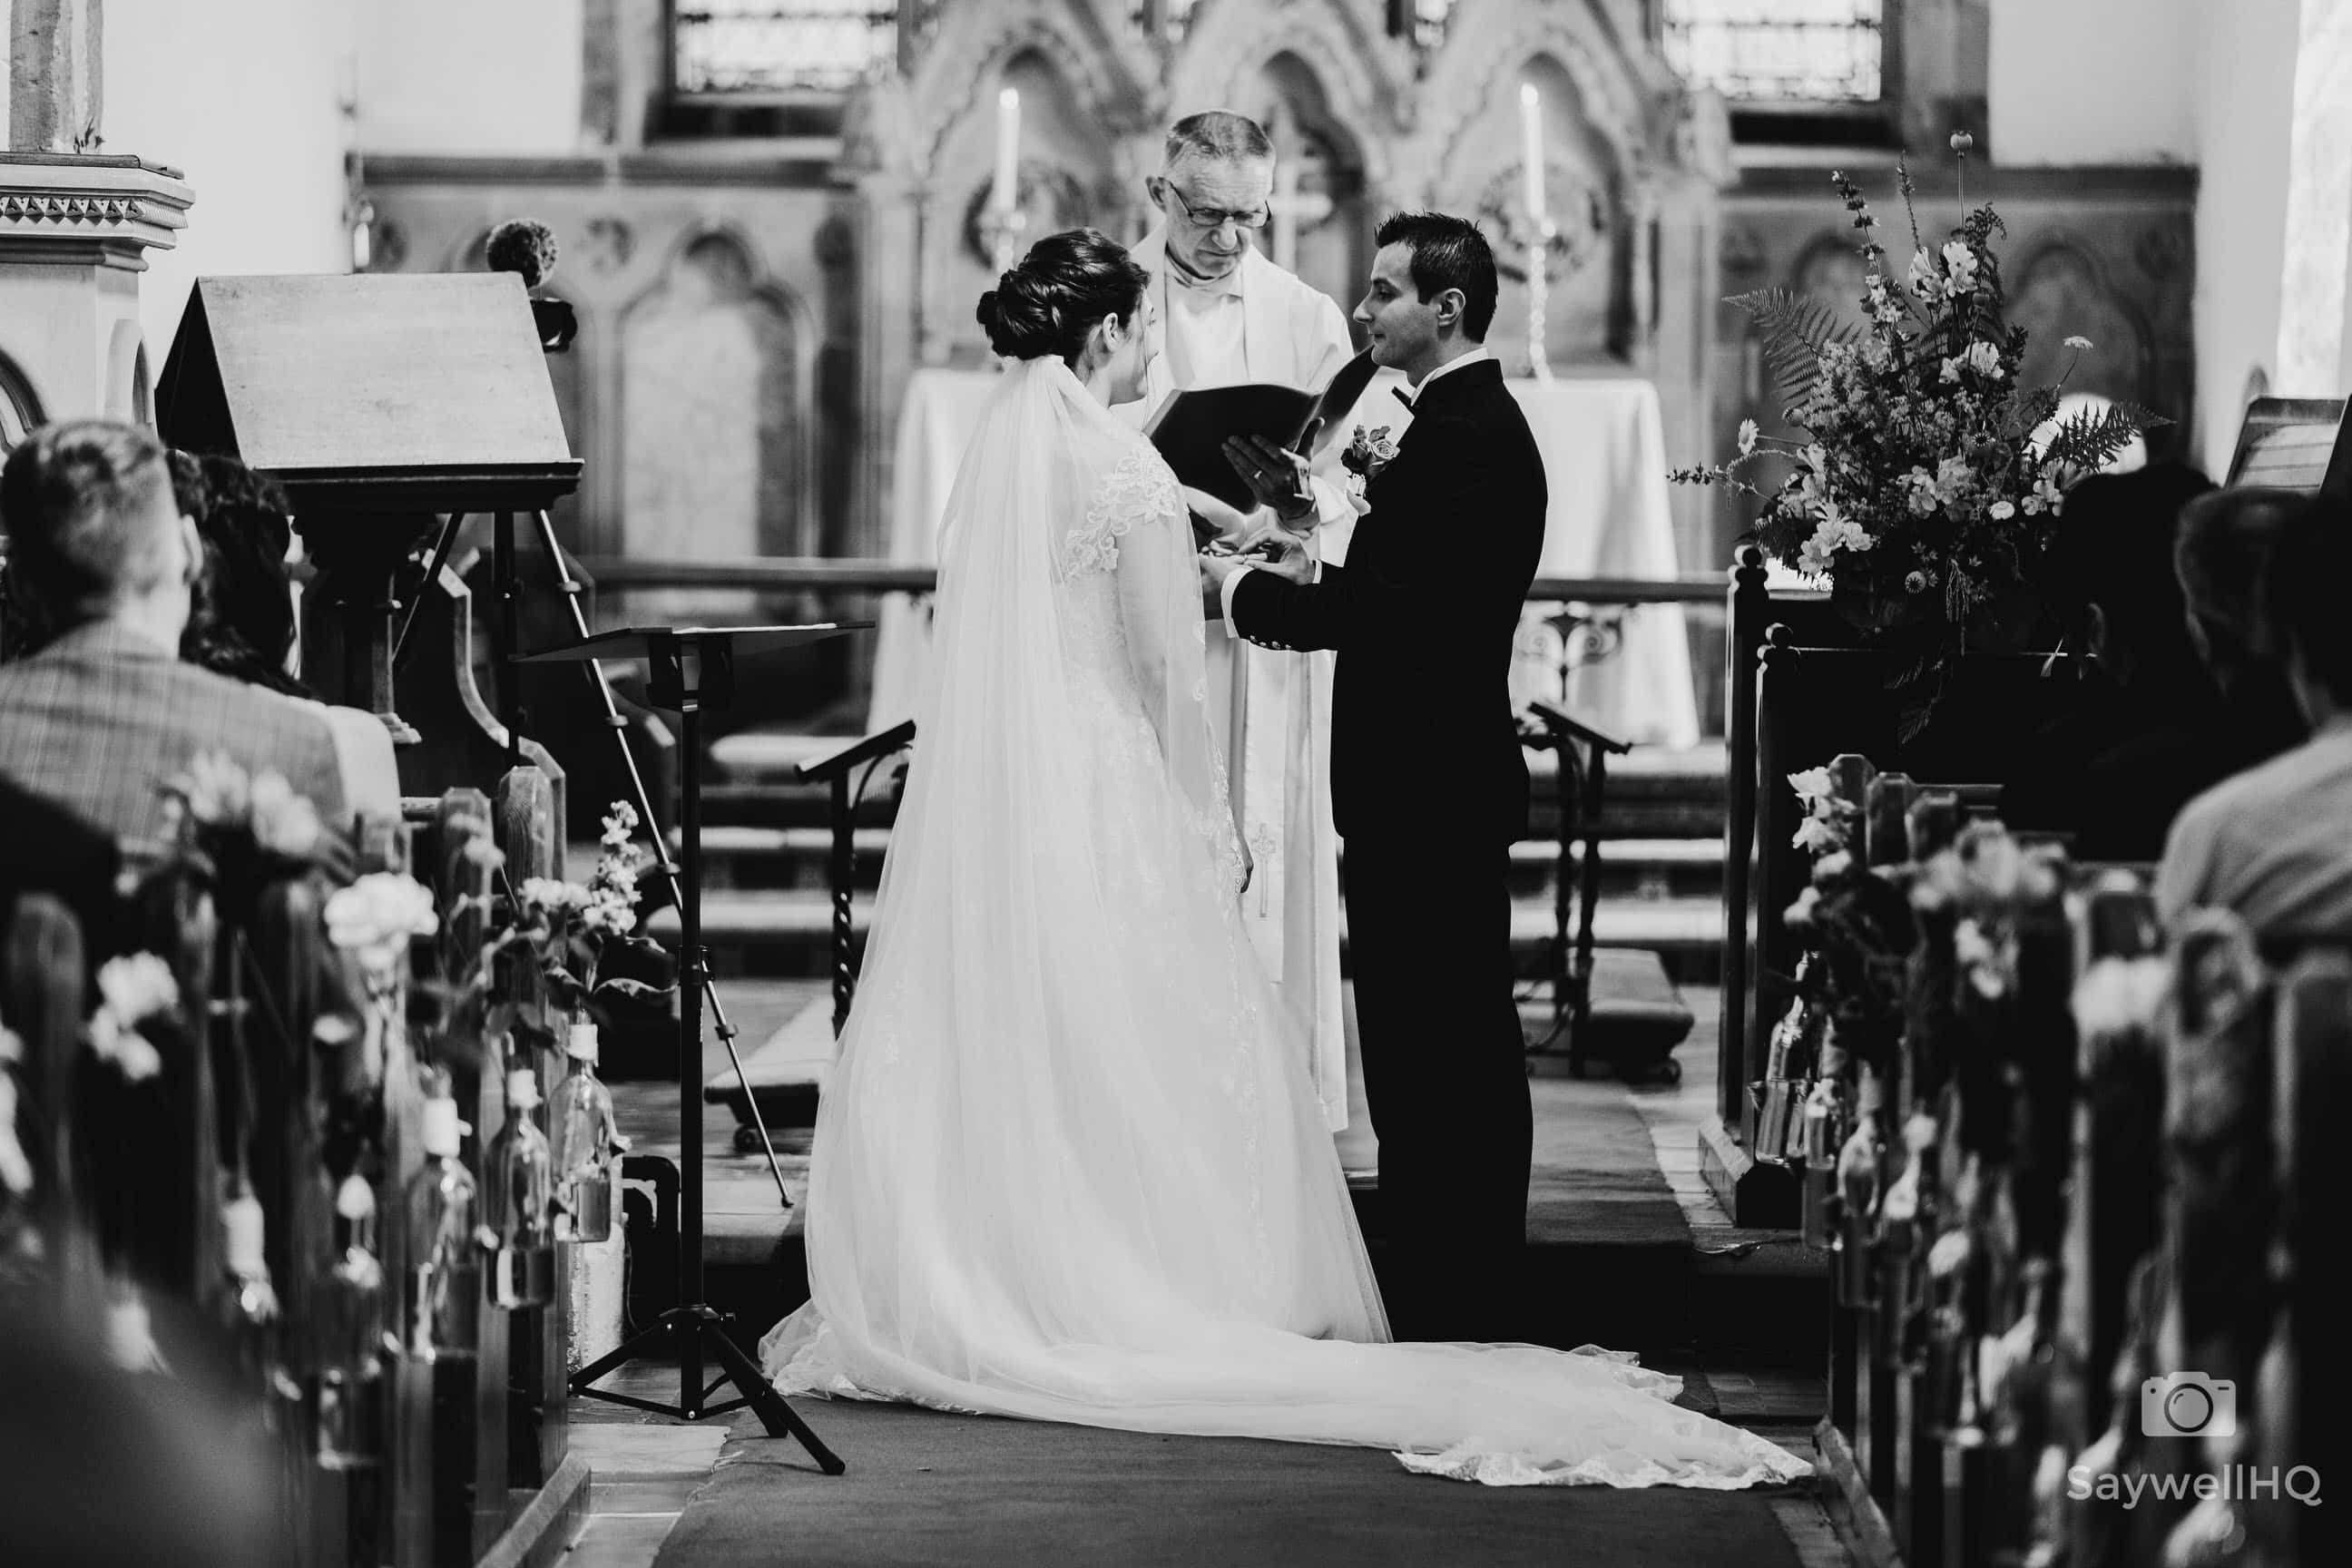 Nottingham Church Wedding Photographer - bride and groom exchange rings